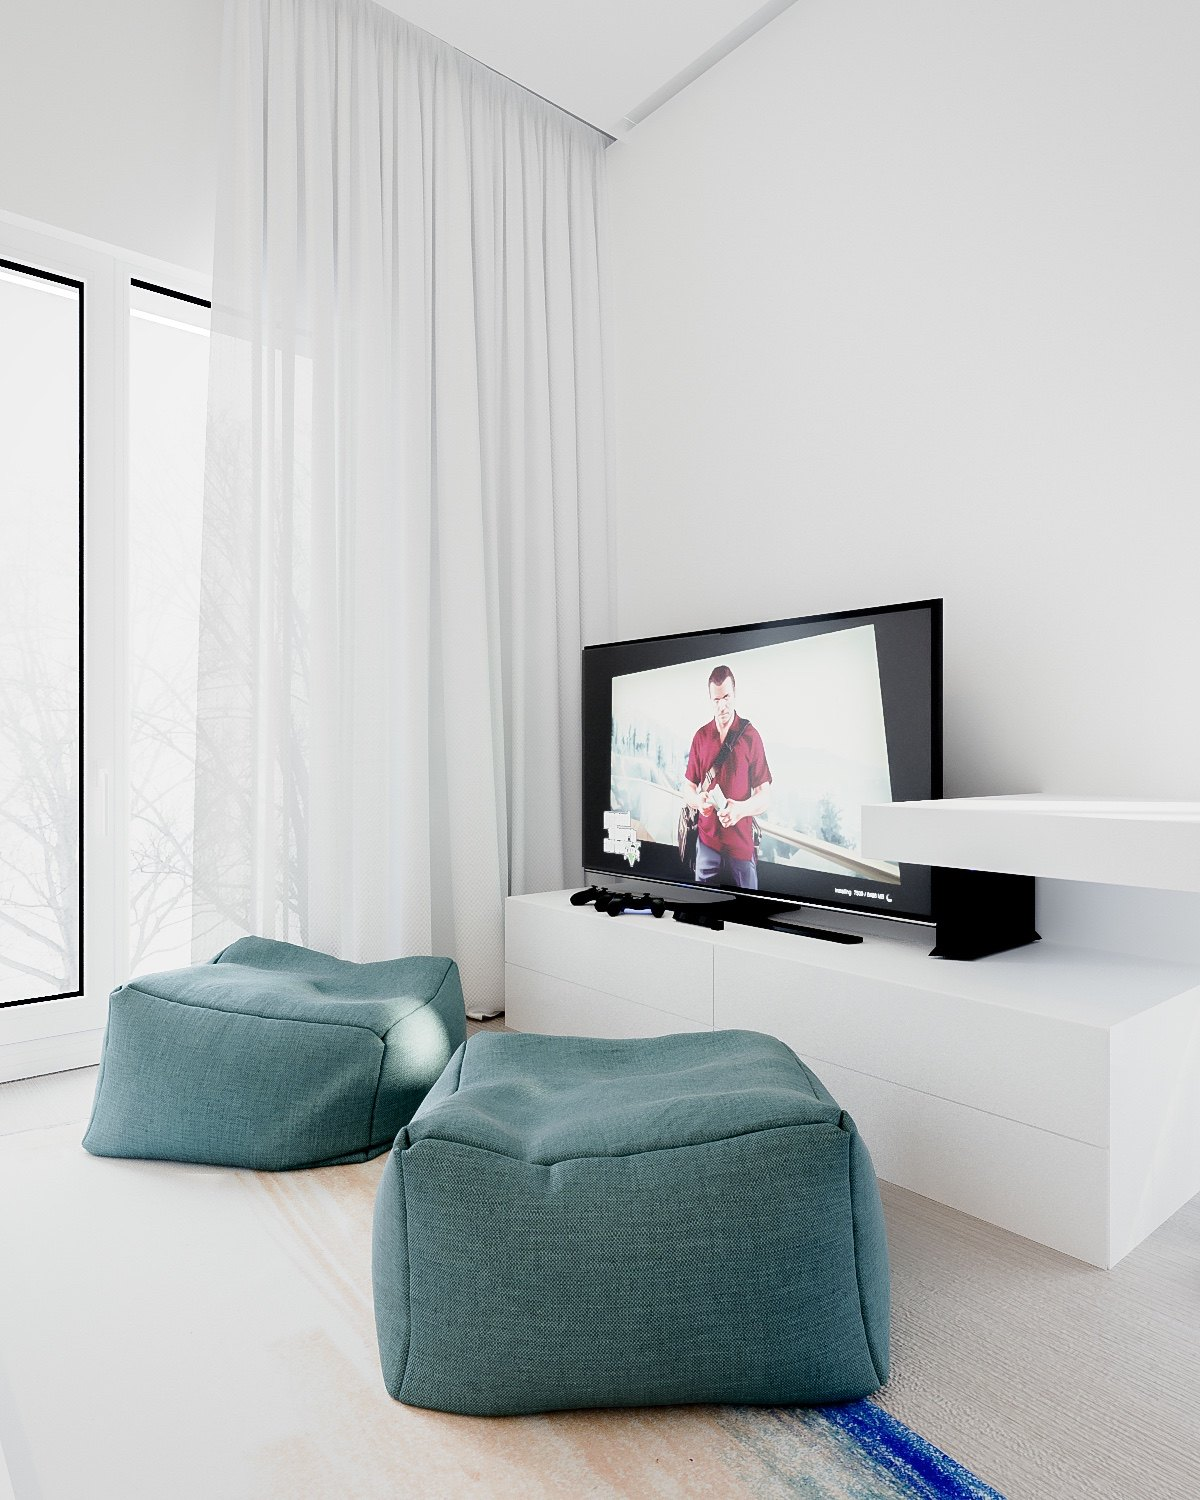 Minimalist Bedroom: A Minimalist Family Home With A Bright Bedroom For The Kids